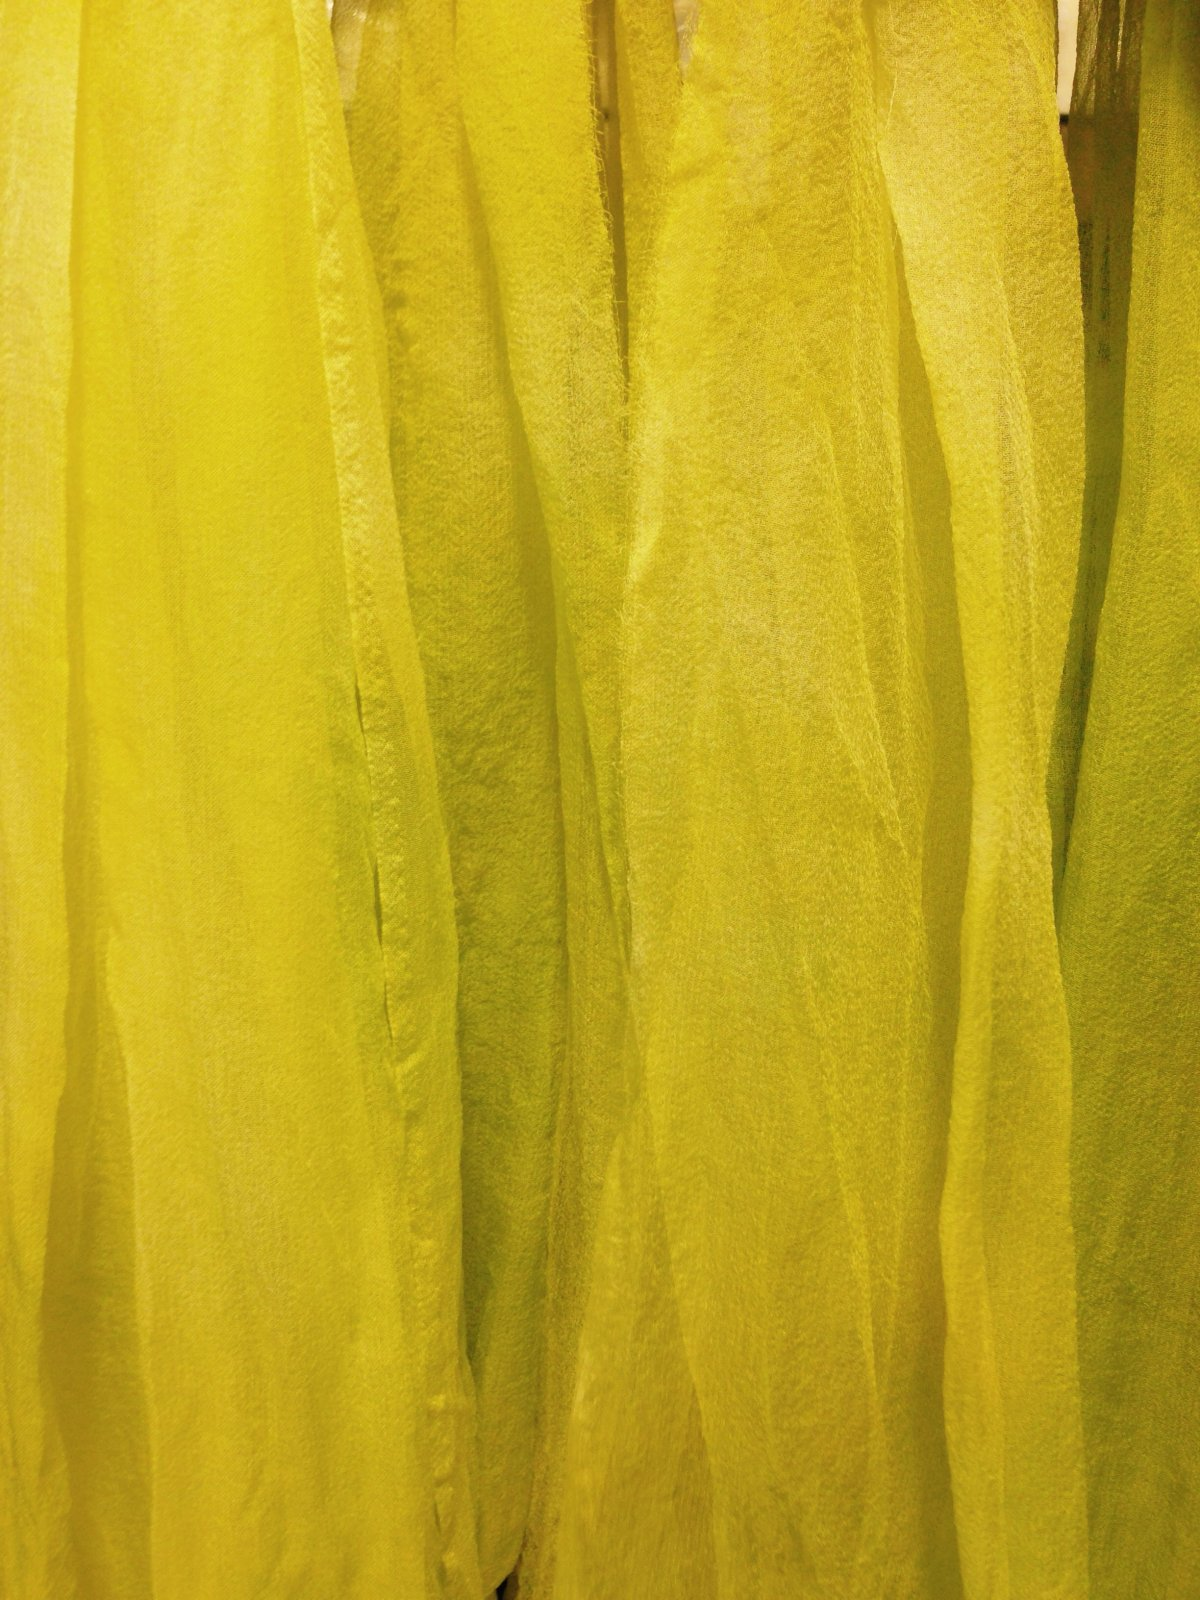 Hand Dyed Silk Gauze (5'x1') - Chartreuse